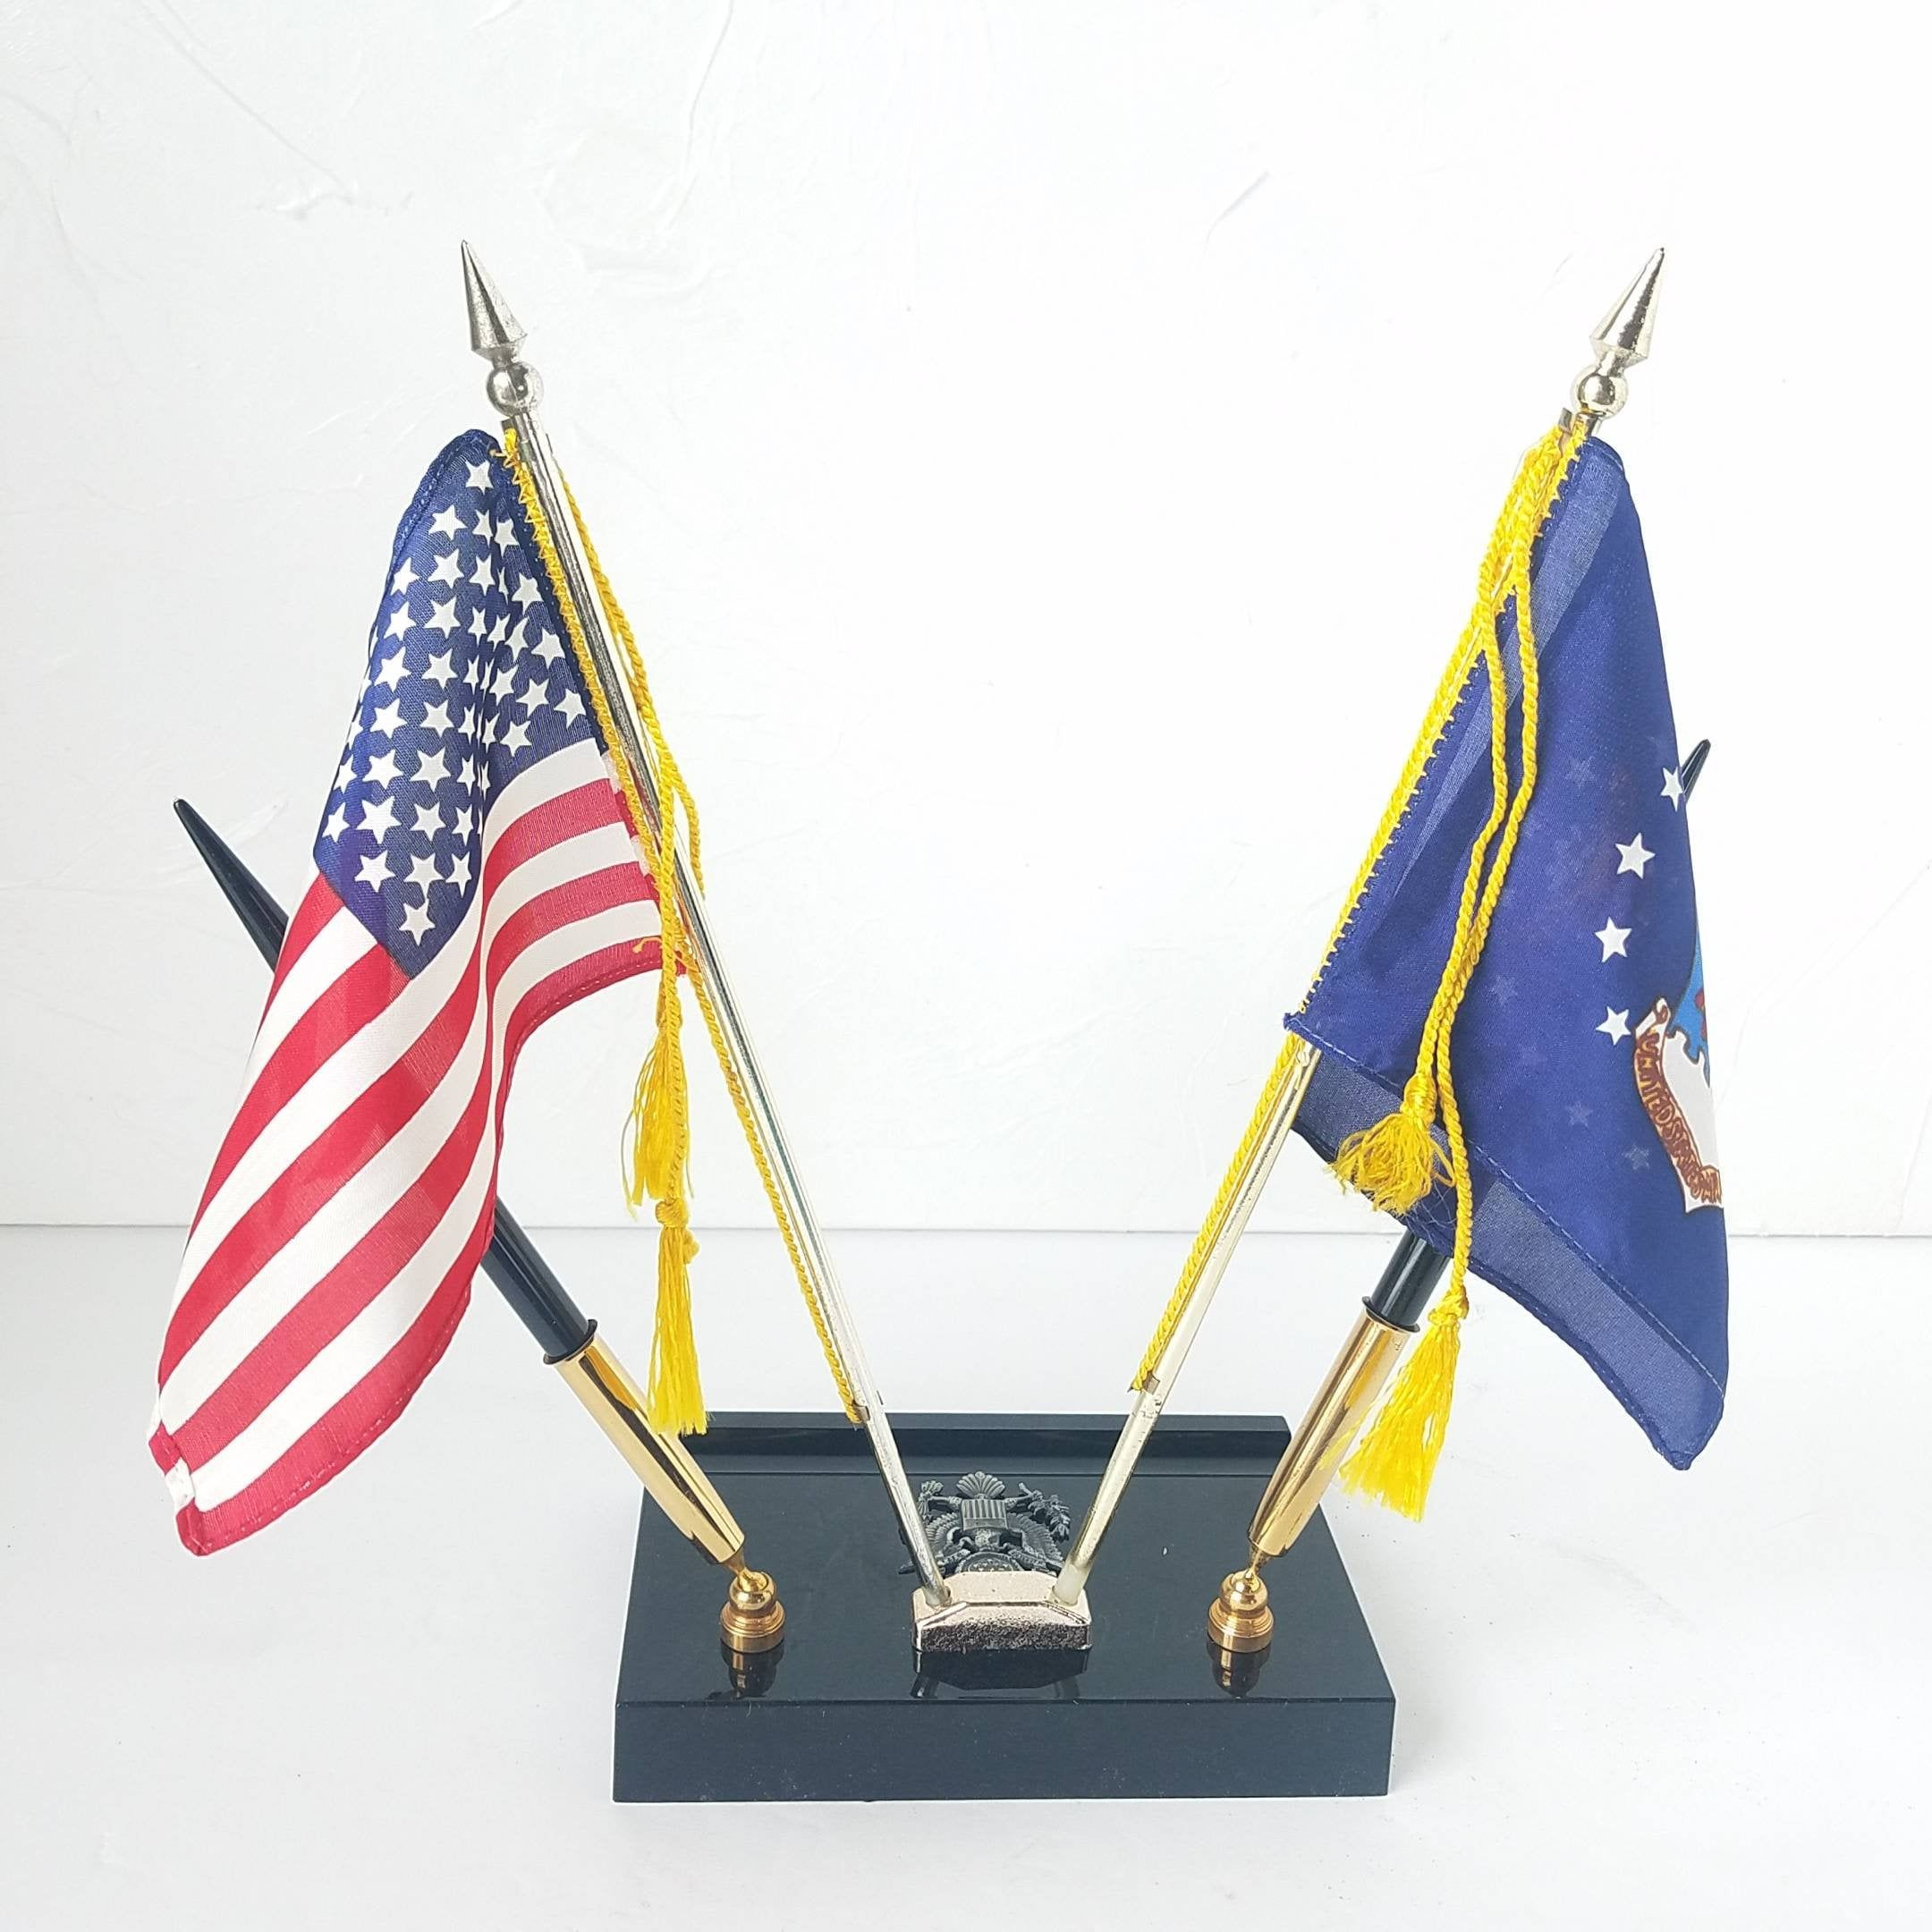 Pen Holder Vintage Flags American Air Force Desk Decor Etsy In 2020 Pen Holders Vintage Office Mini Flags